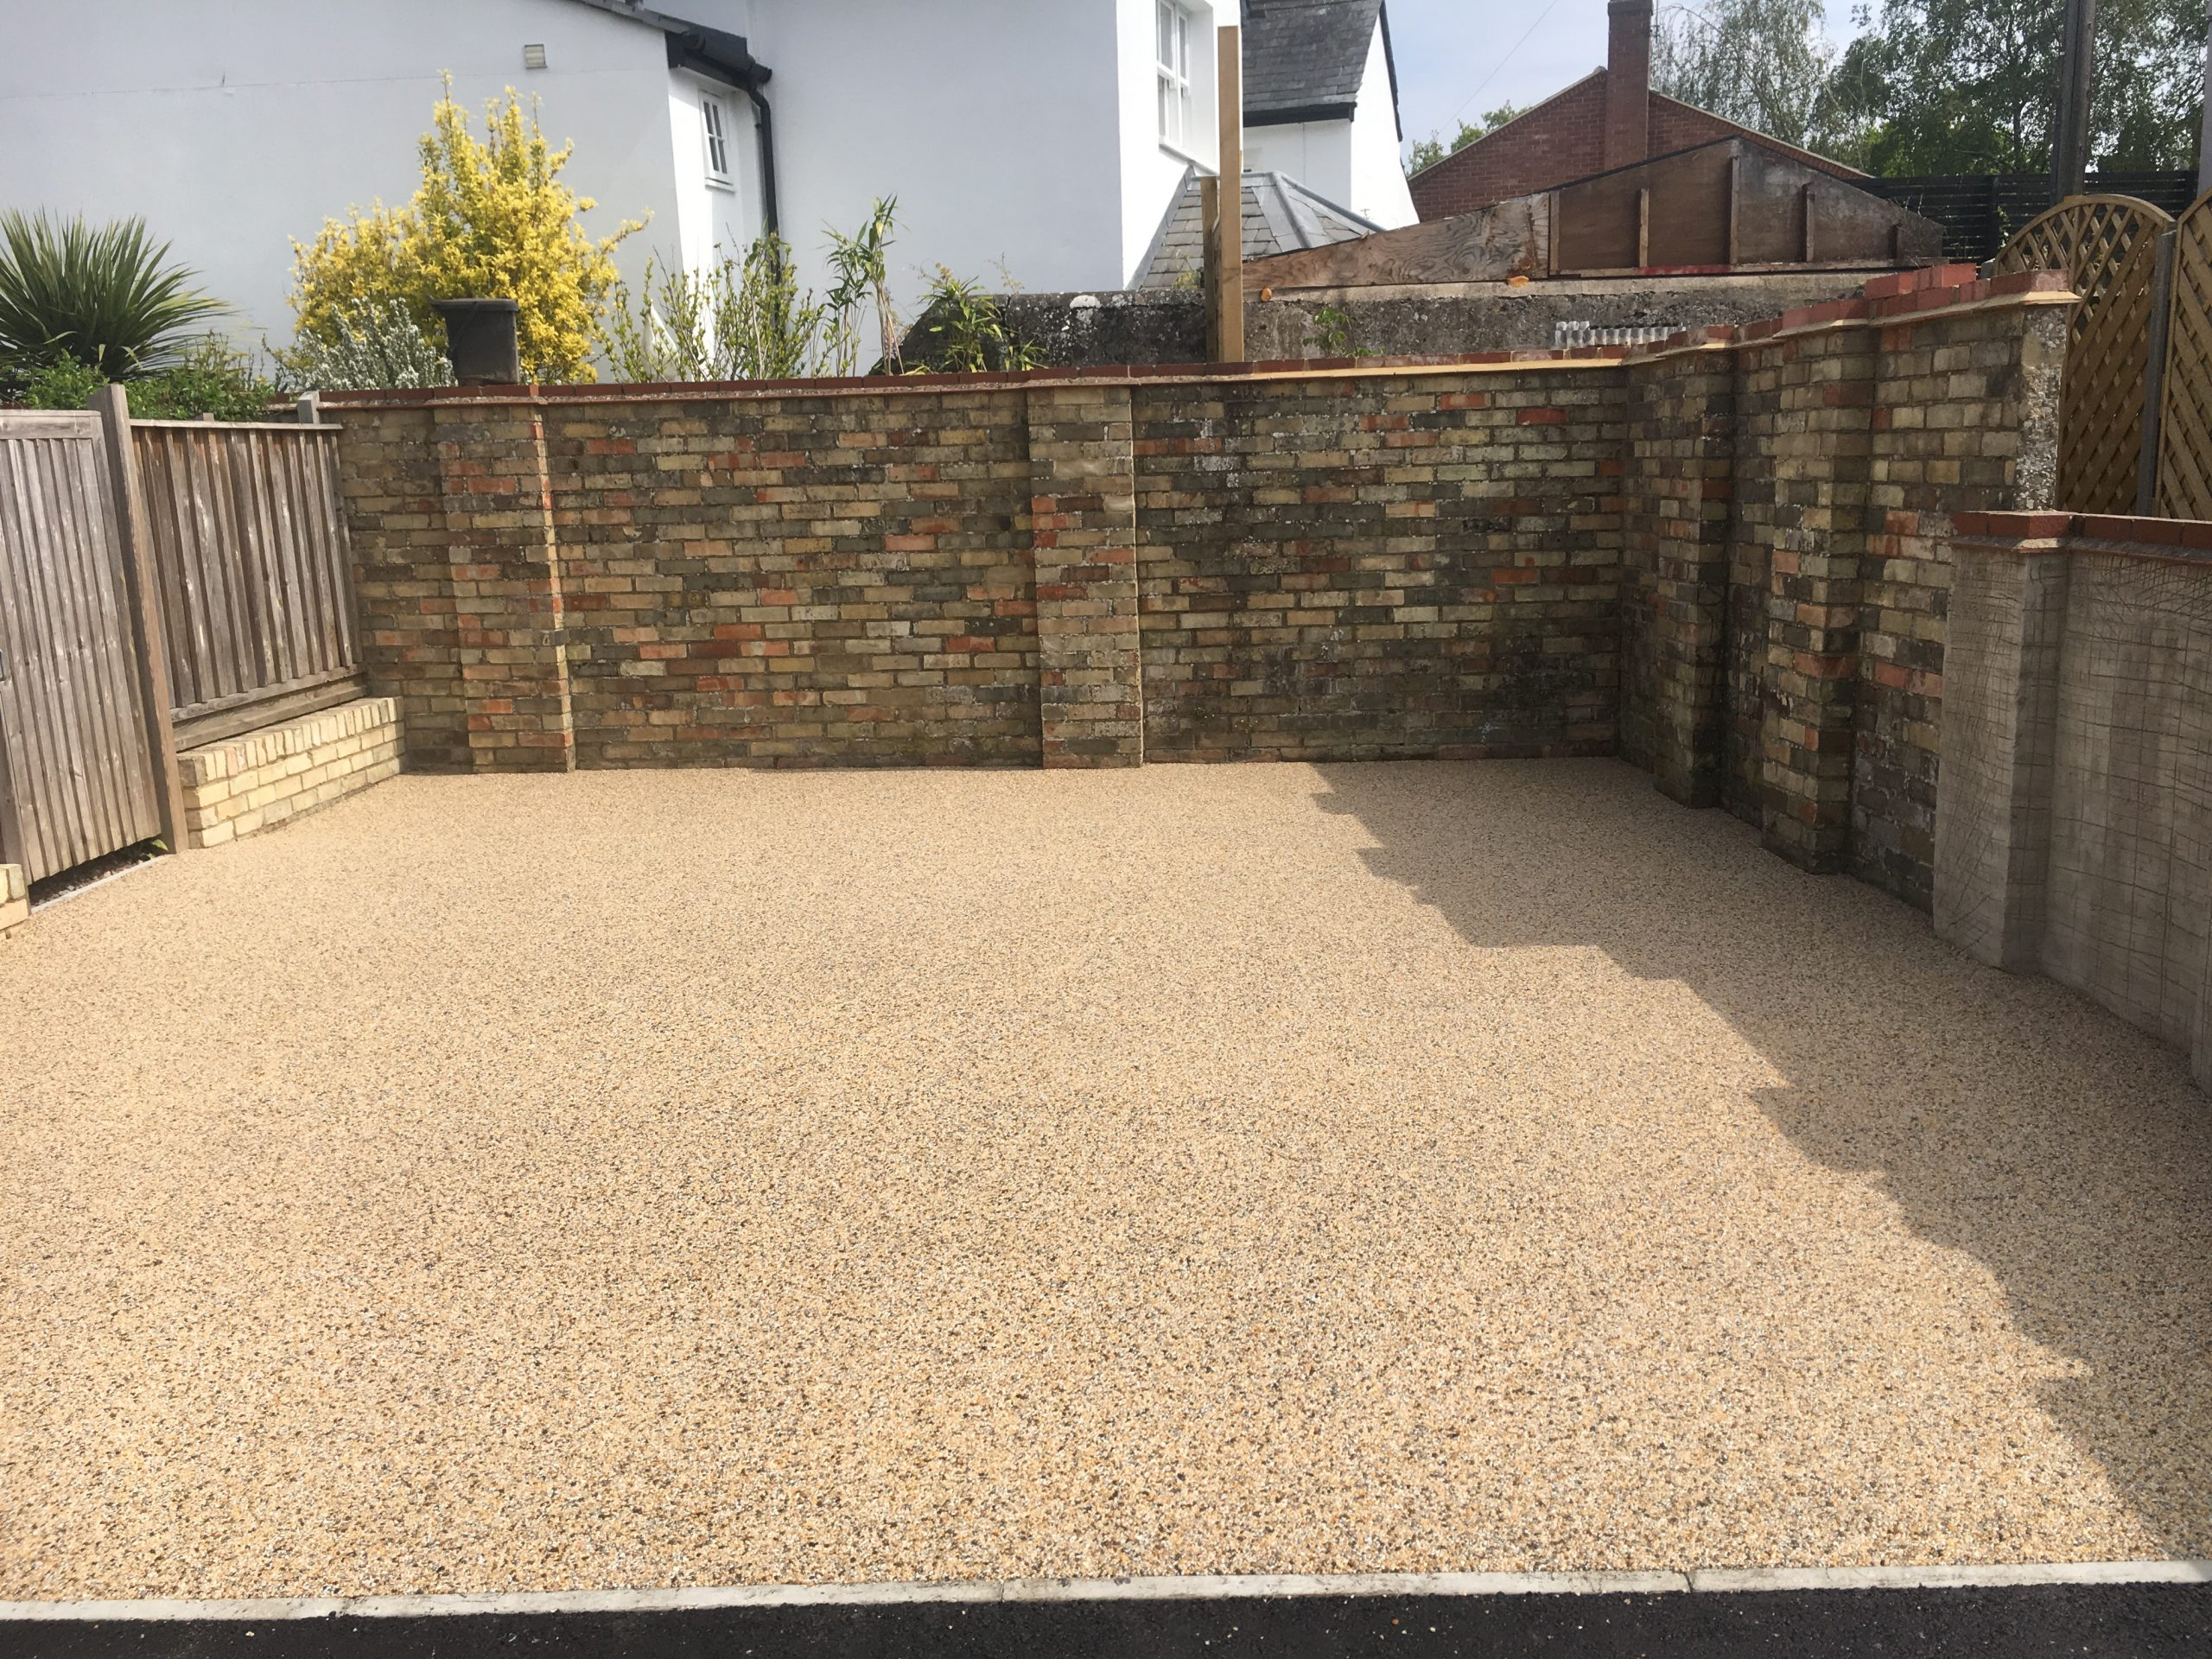 Resin Bound Gravel Driveway - Emerald Landscaping Company